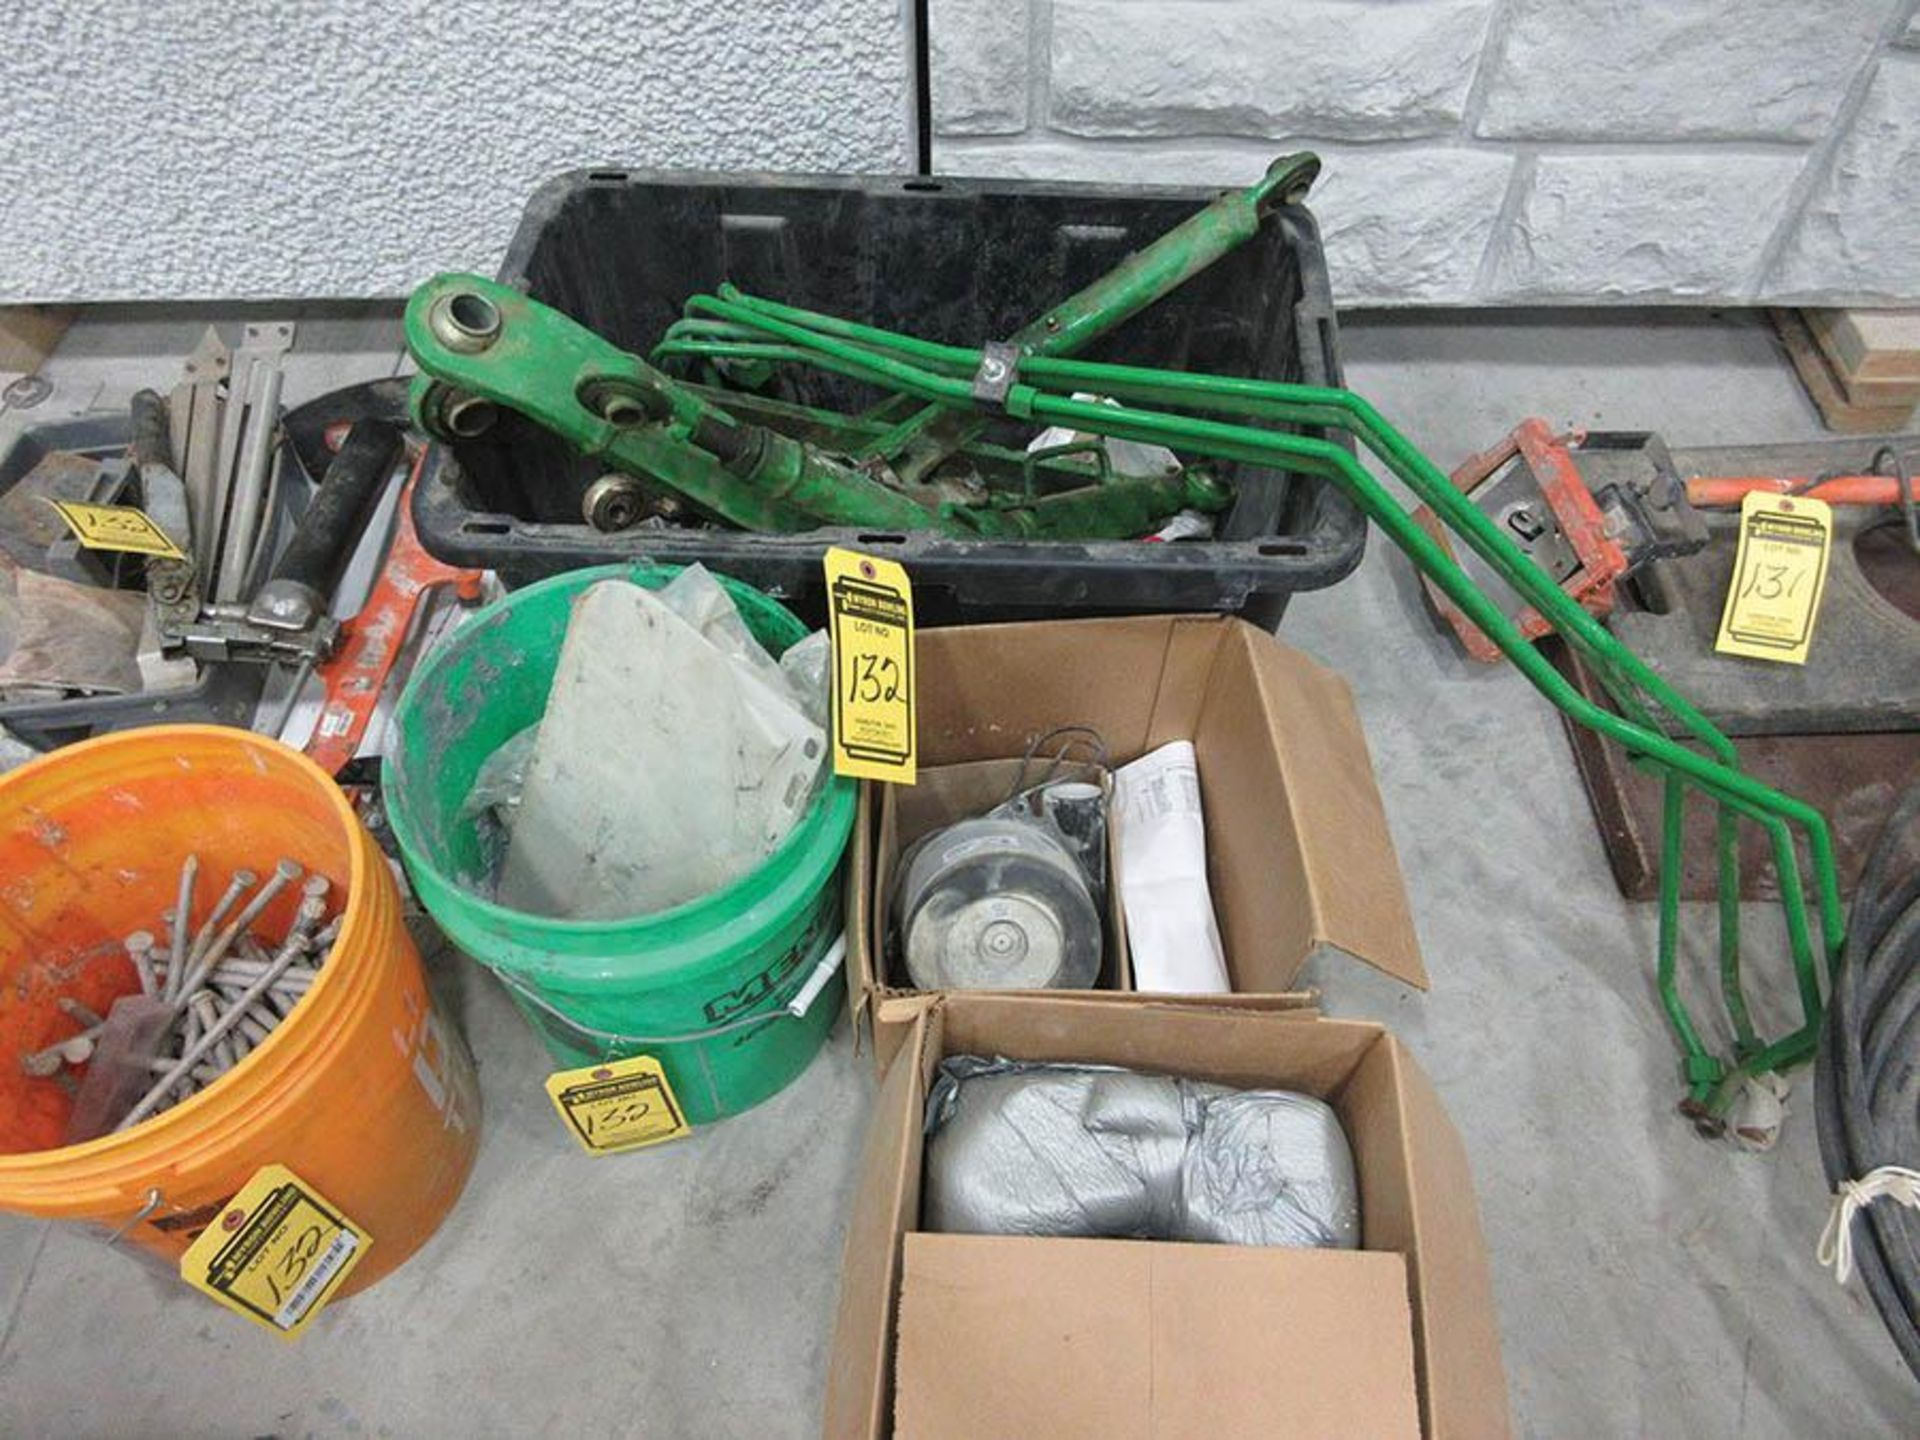 JOHN DEERE PARTS,SPIKES, NAILS, GREASE GUN, OTHER - Image 2 of 3